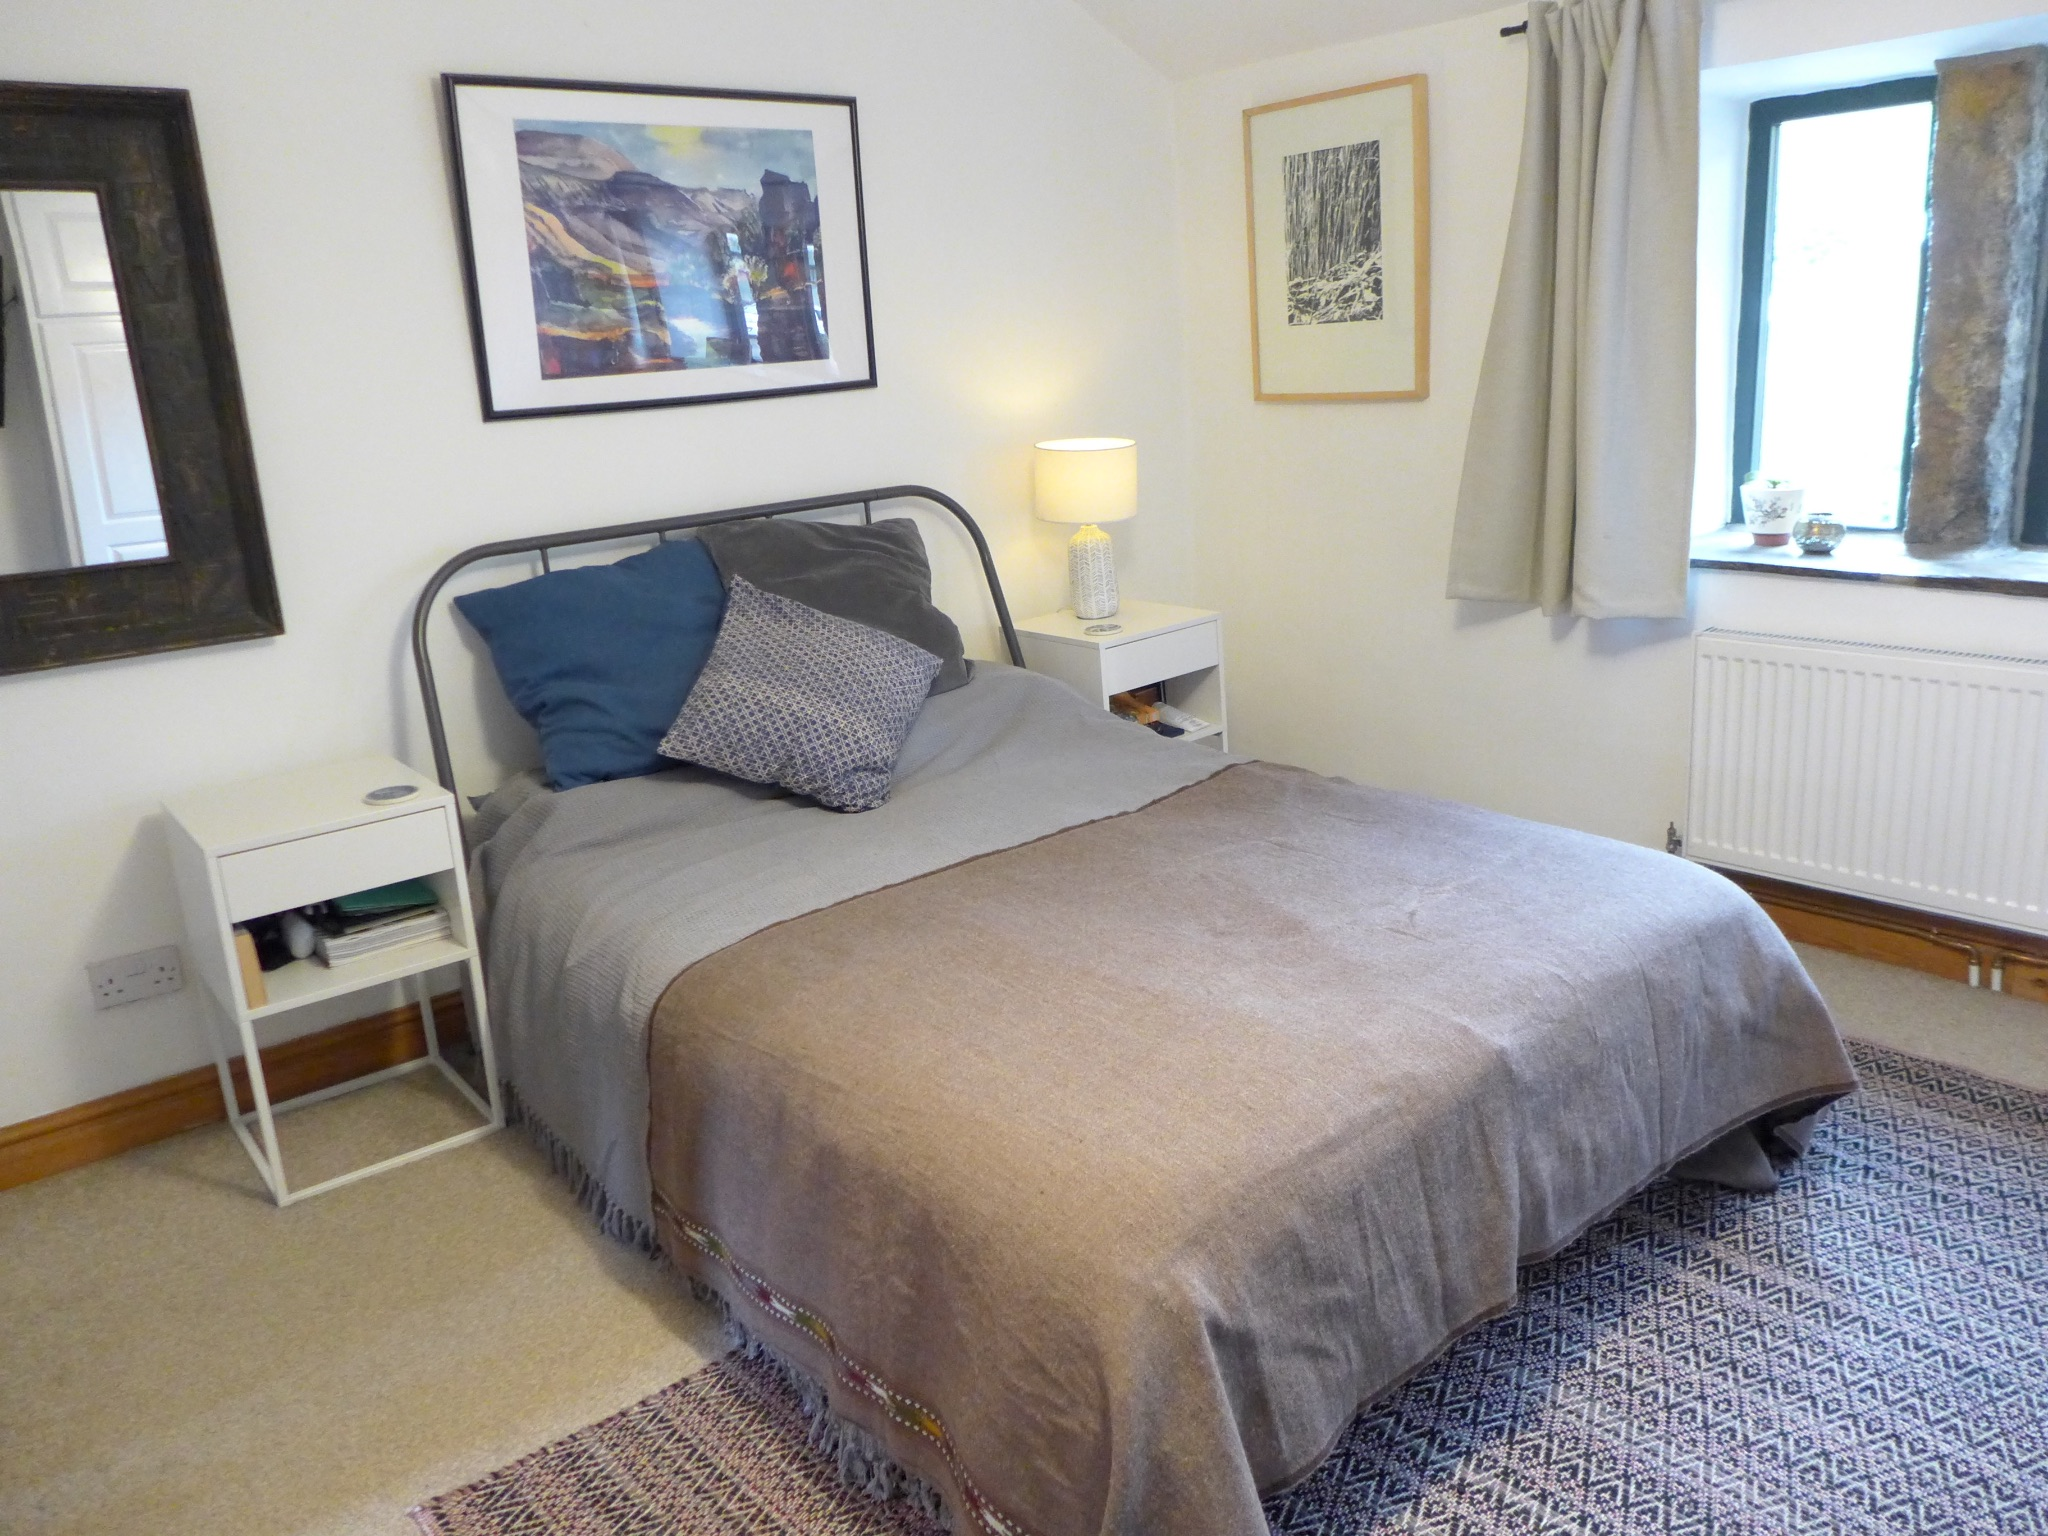 2 bedroom cottage house For Sale in Calderdale - Photograph 11.